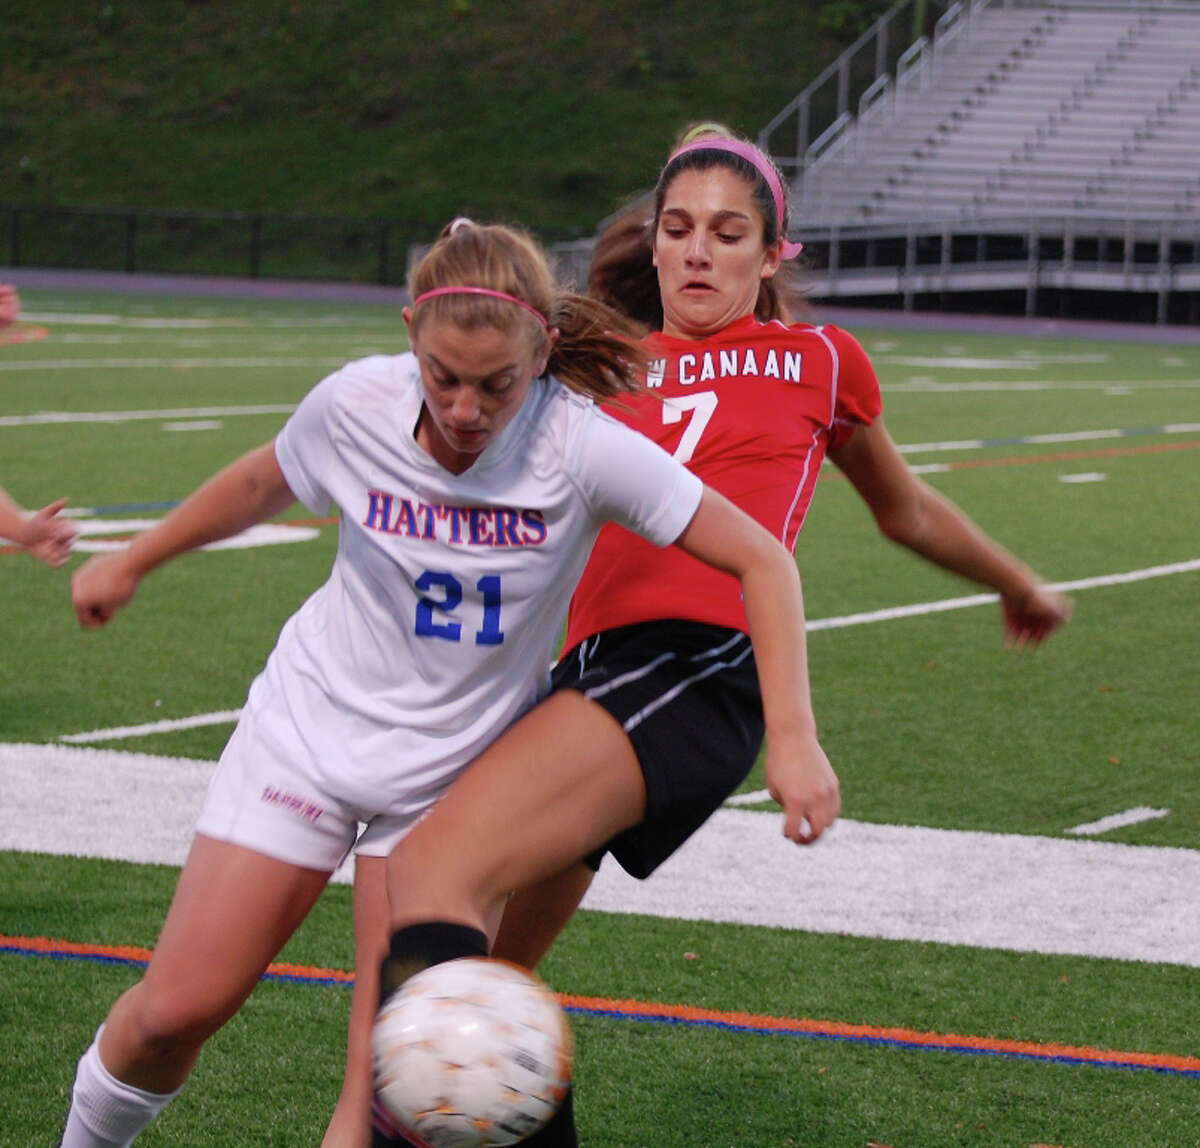 New Canaan's Azada Amis-Aslani (No. 7) and Danbury's Charlotte Blain (No. 21) get tangled up going for the ball during Danburyís 2-1 win at Danbury High School on Monday, Oct. 14, 2013. Contributed photo by Kim Persky.